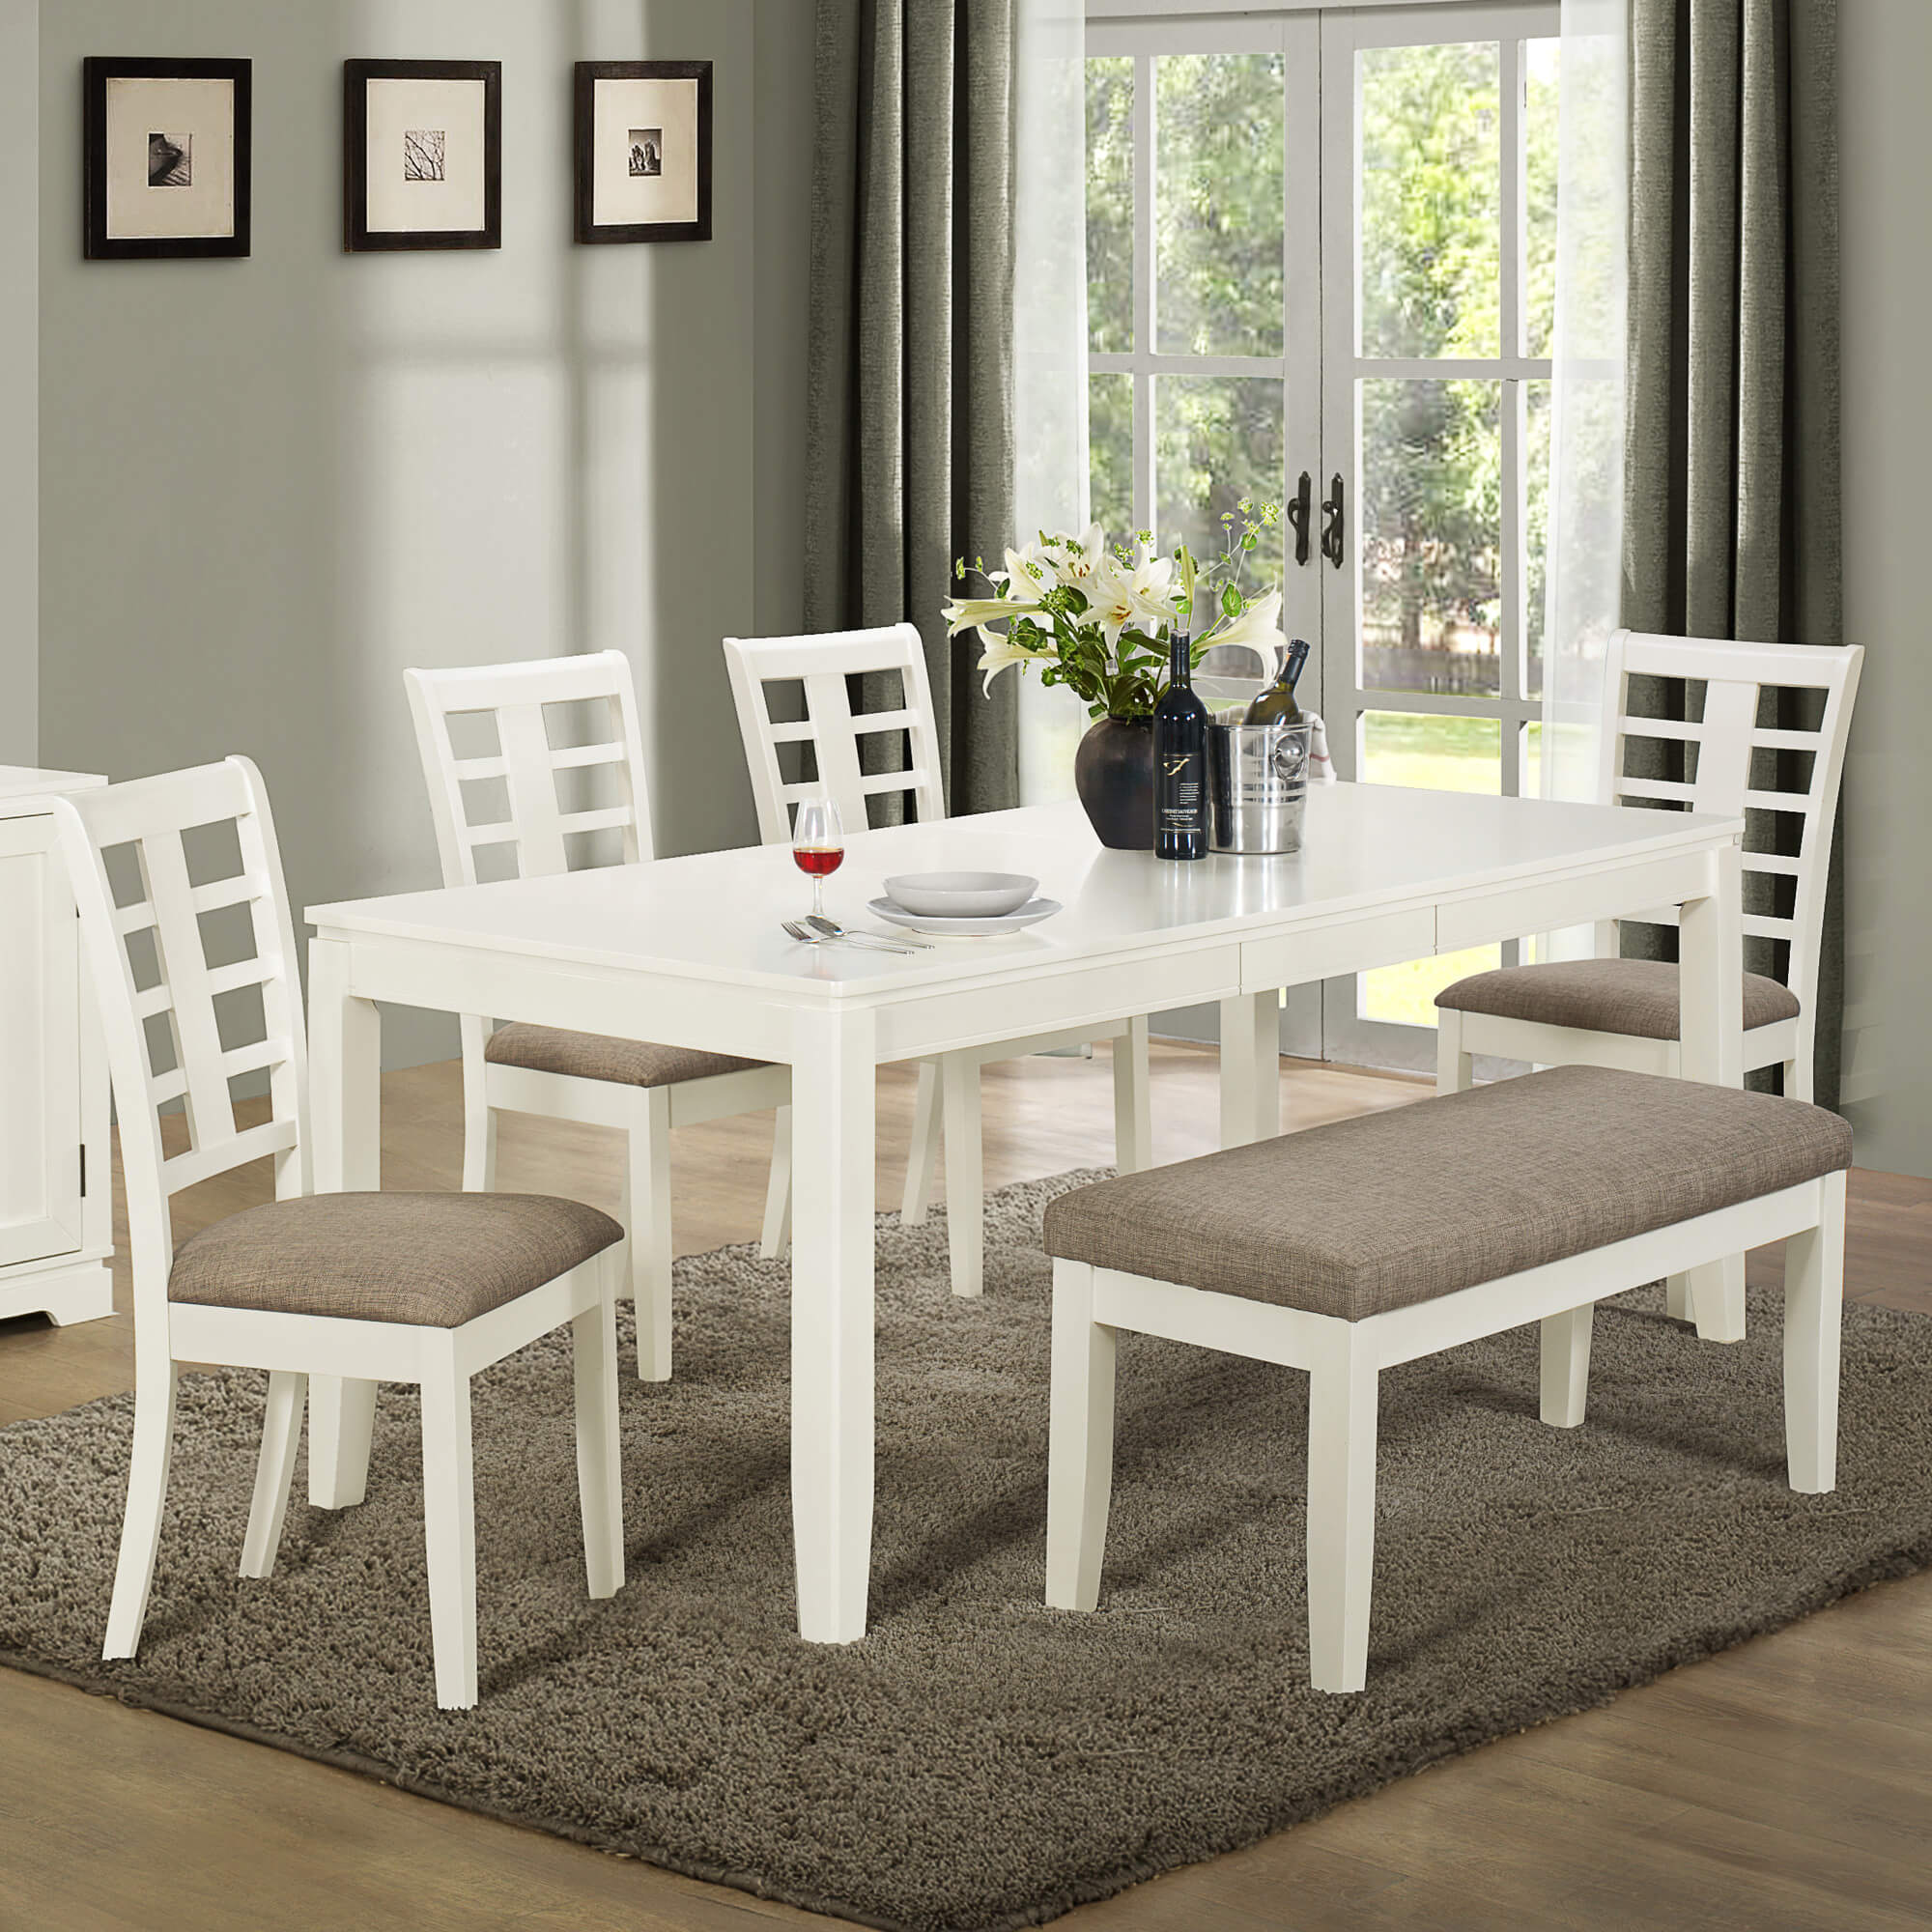 Dining room table with corner bench seat - Built With Solid Wood And Mdf Board This White And Grey Dining Set With Bench